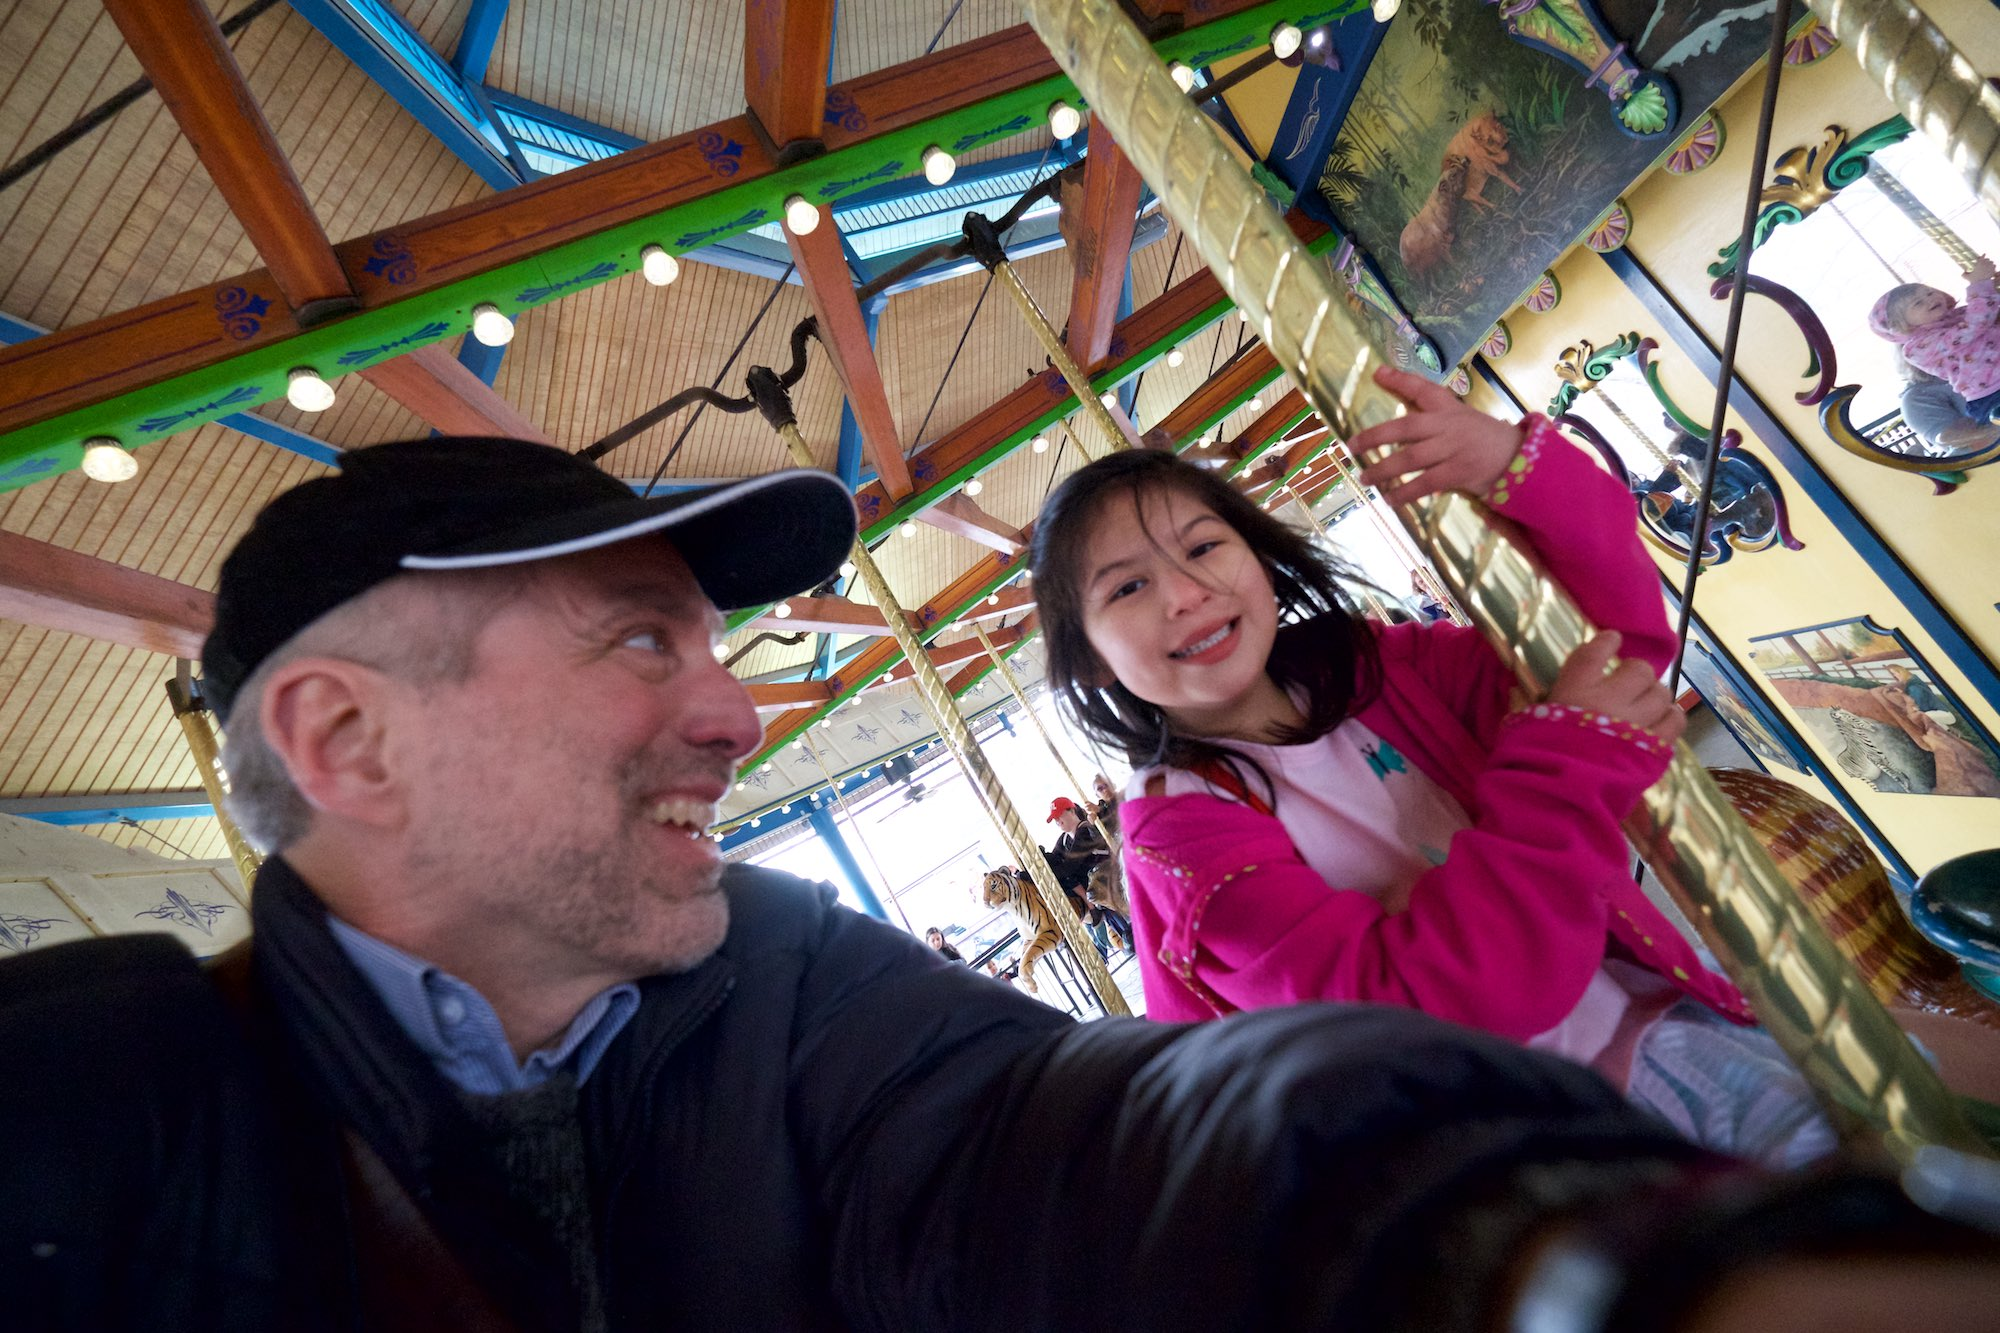 Day 78 - Some old guy and his granddaughter ride the carousel in the zoo.